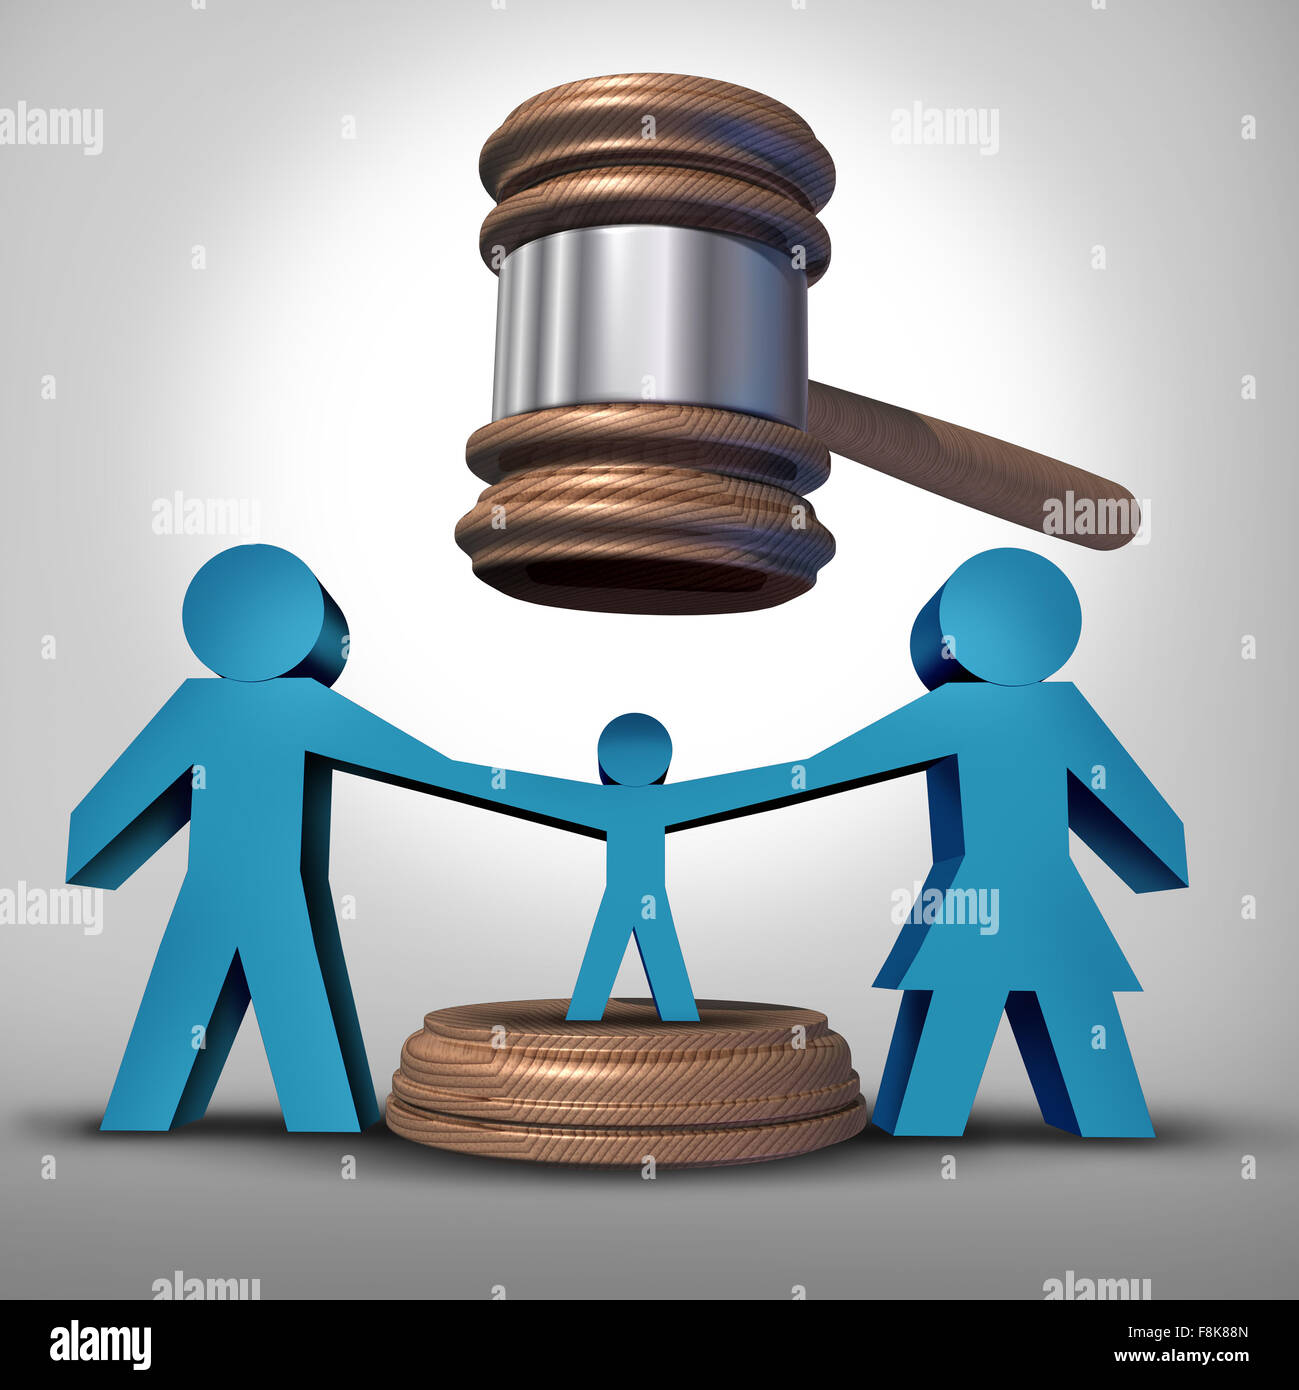 Child custody battle as a family law concept during a legal separation or divorce dispute as a father mother icon - Stock Image